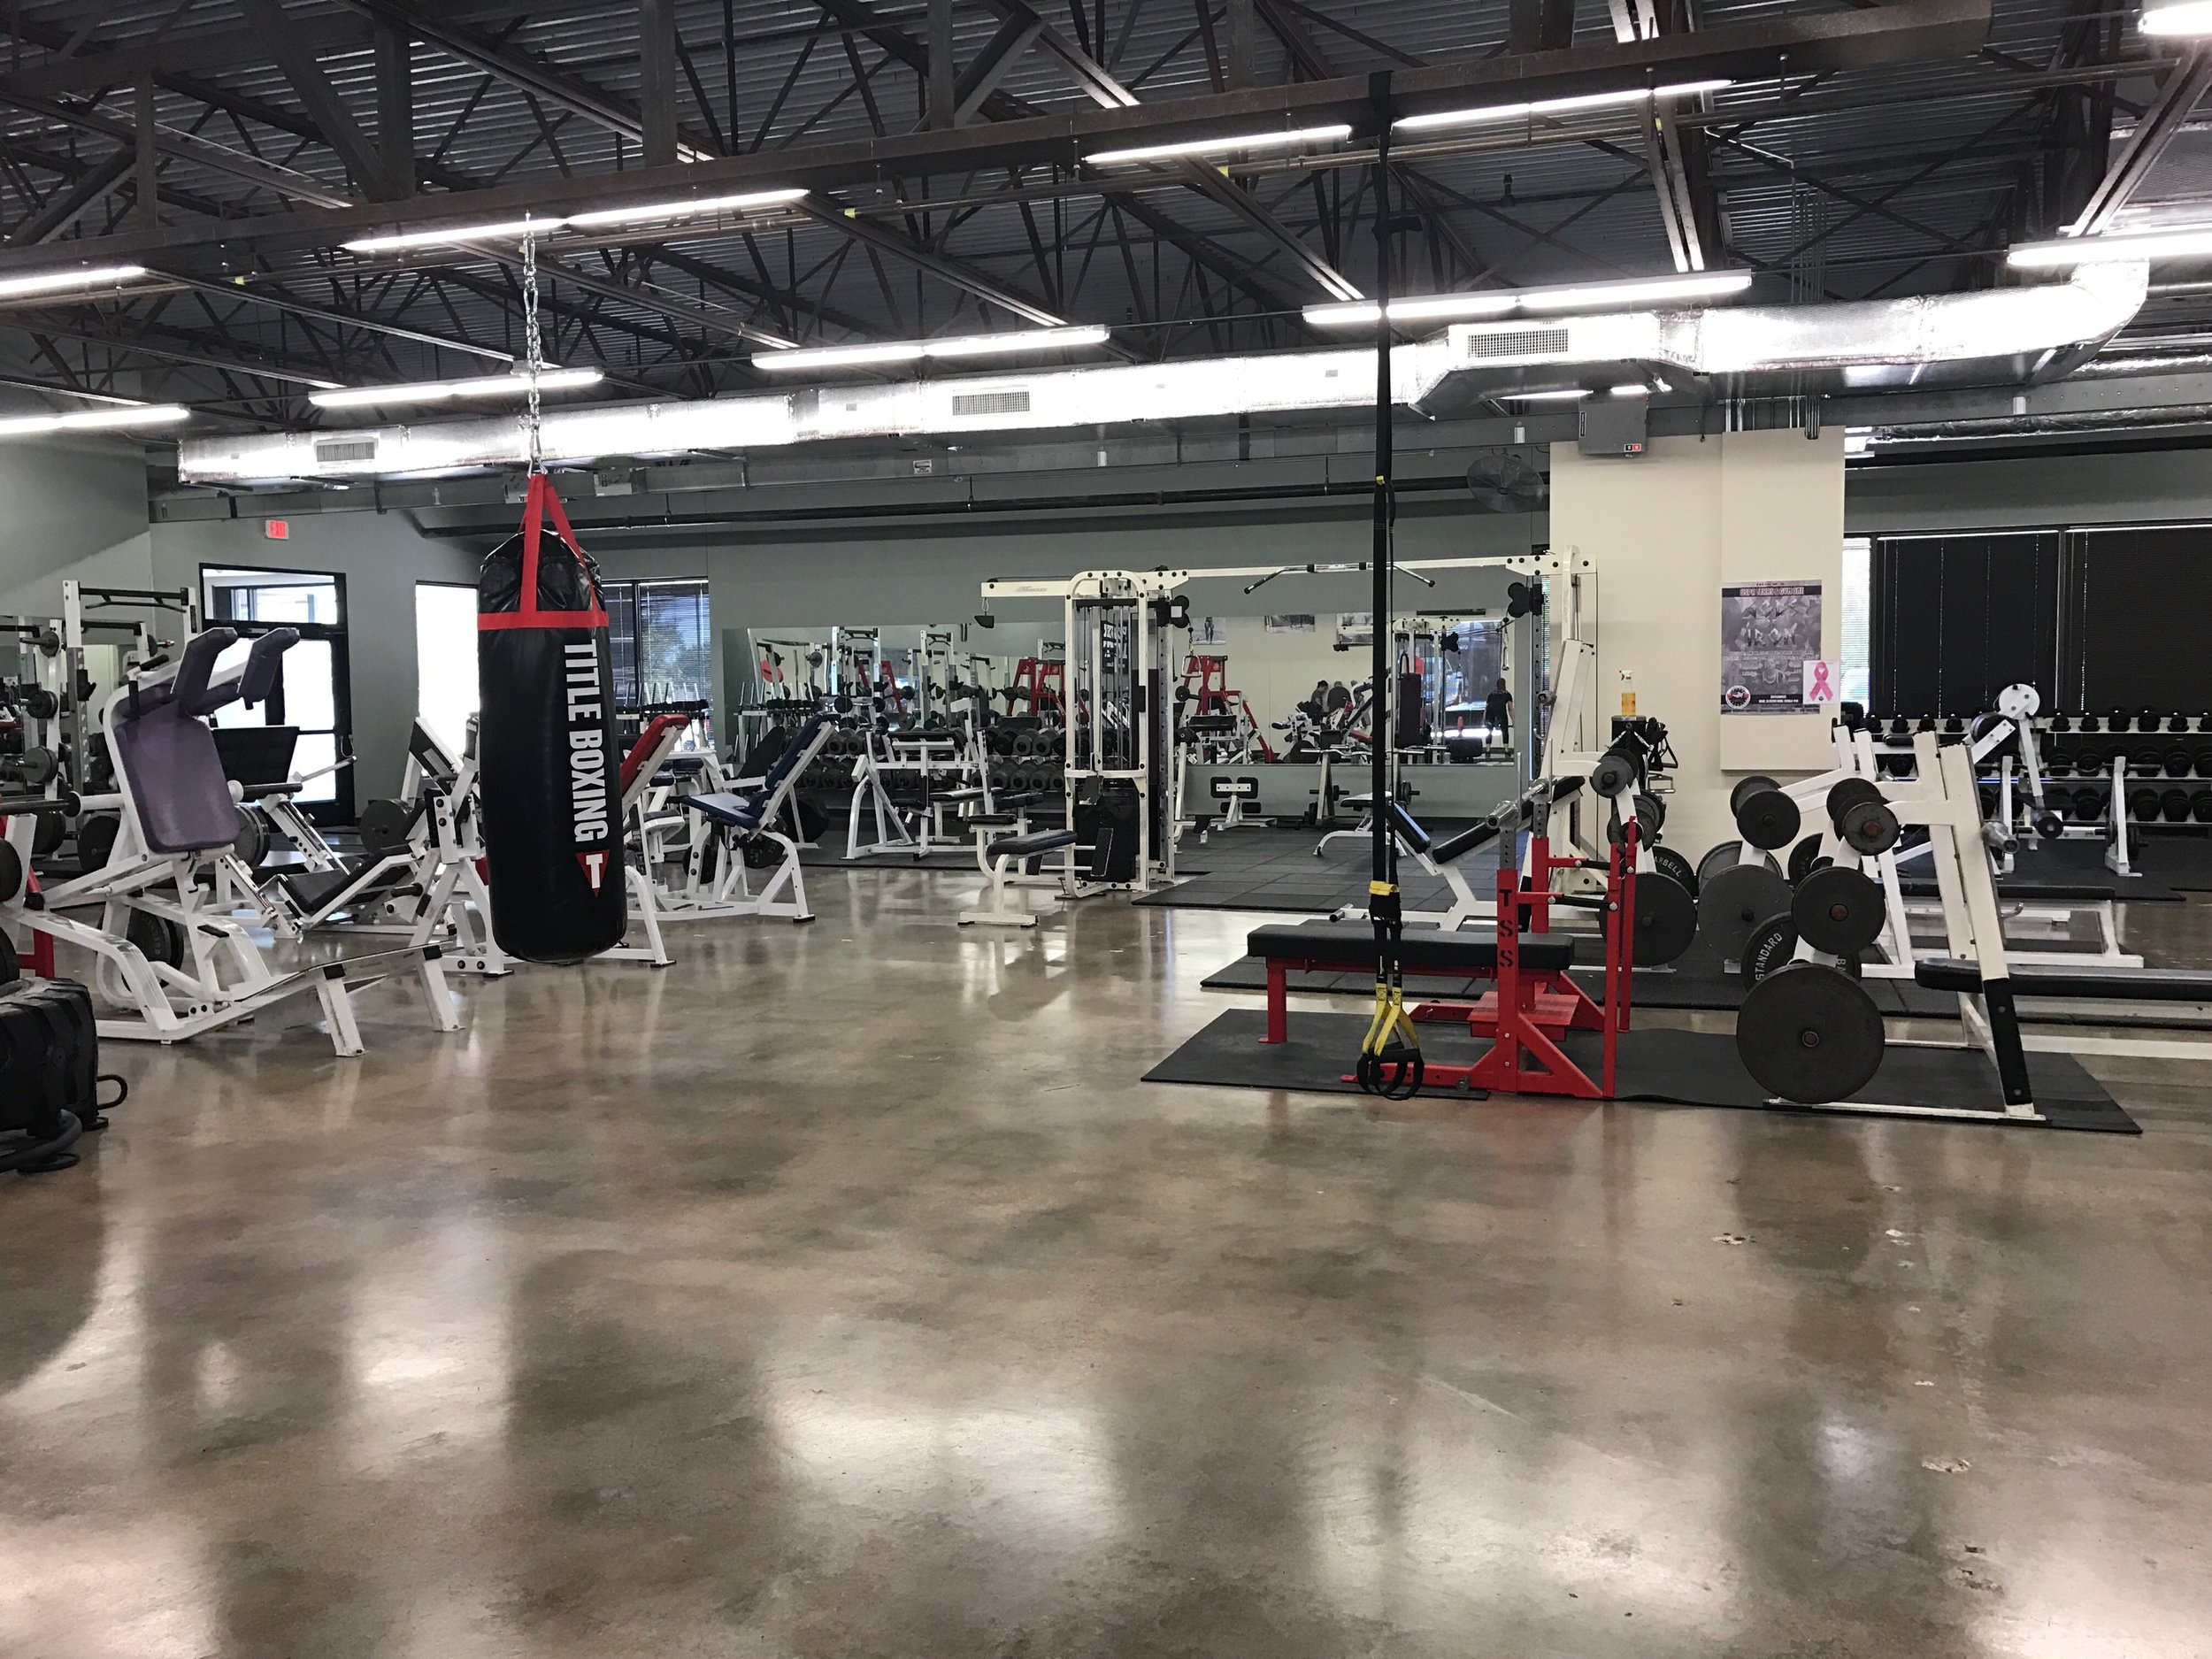 Power racks, competition bench press, heavy bags and open gym space at Gym One.